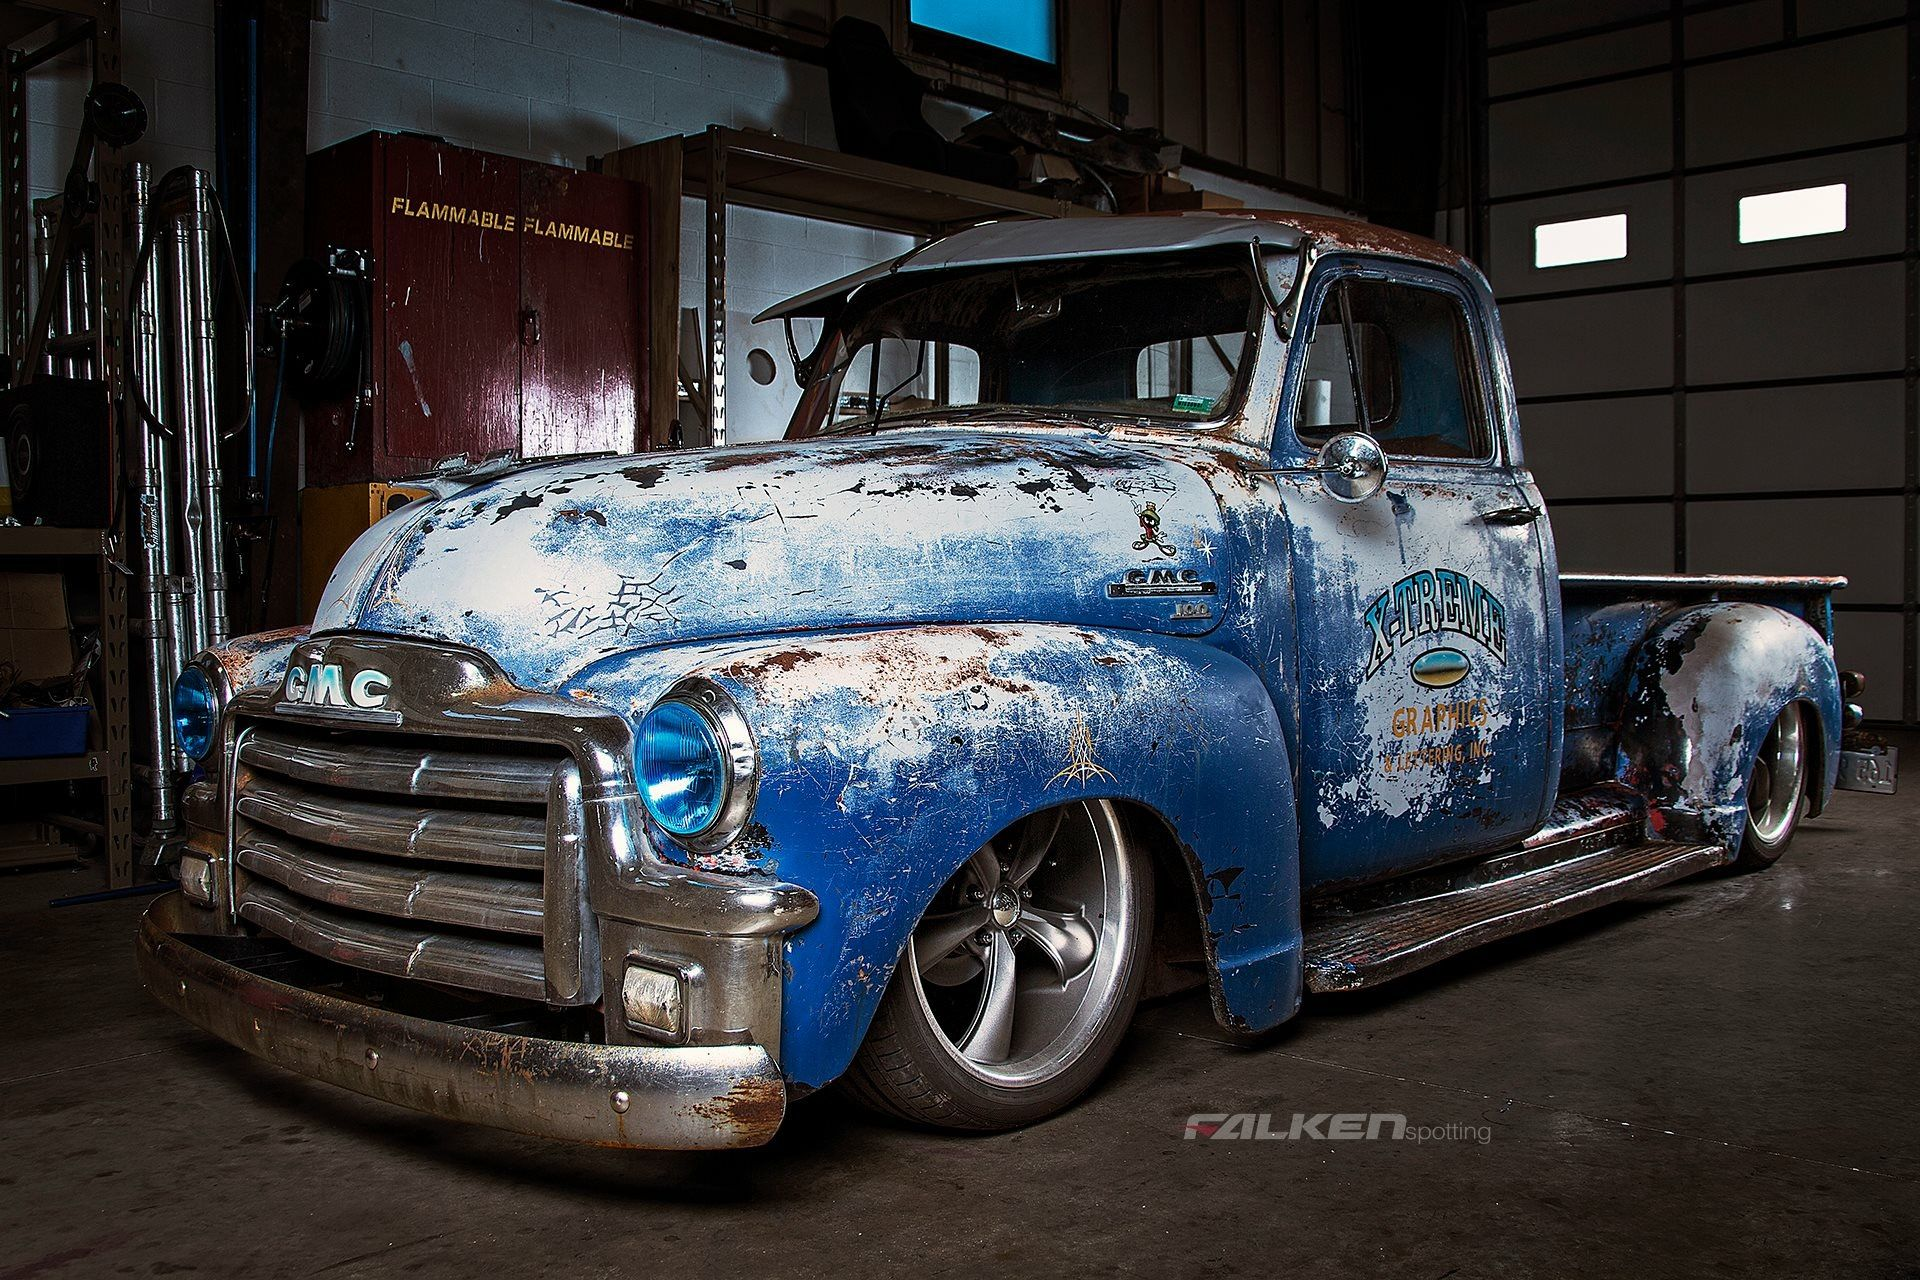 Pin by Daniel Boyd on Trucks | Classic chevy trucks, C10